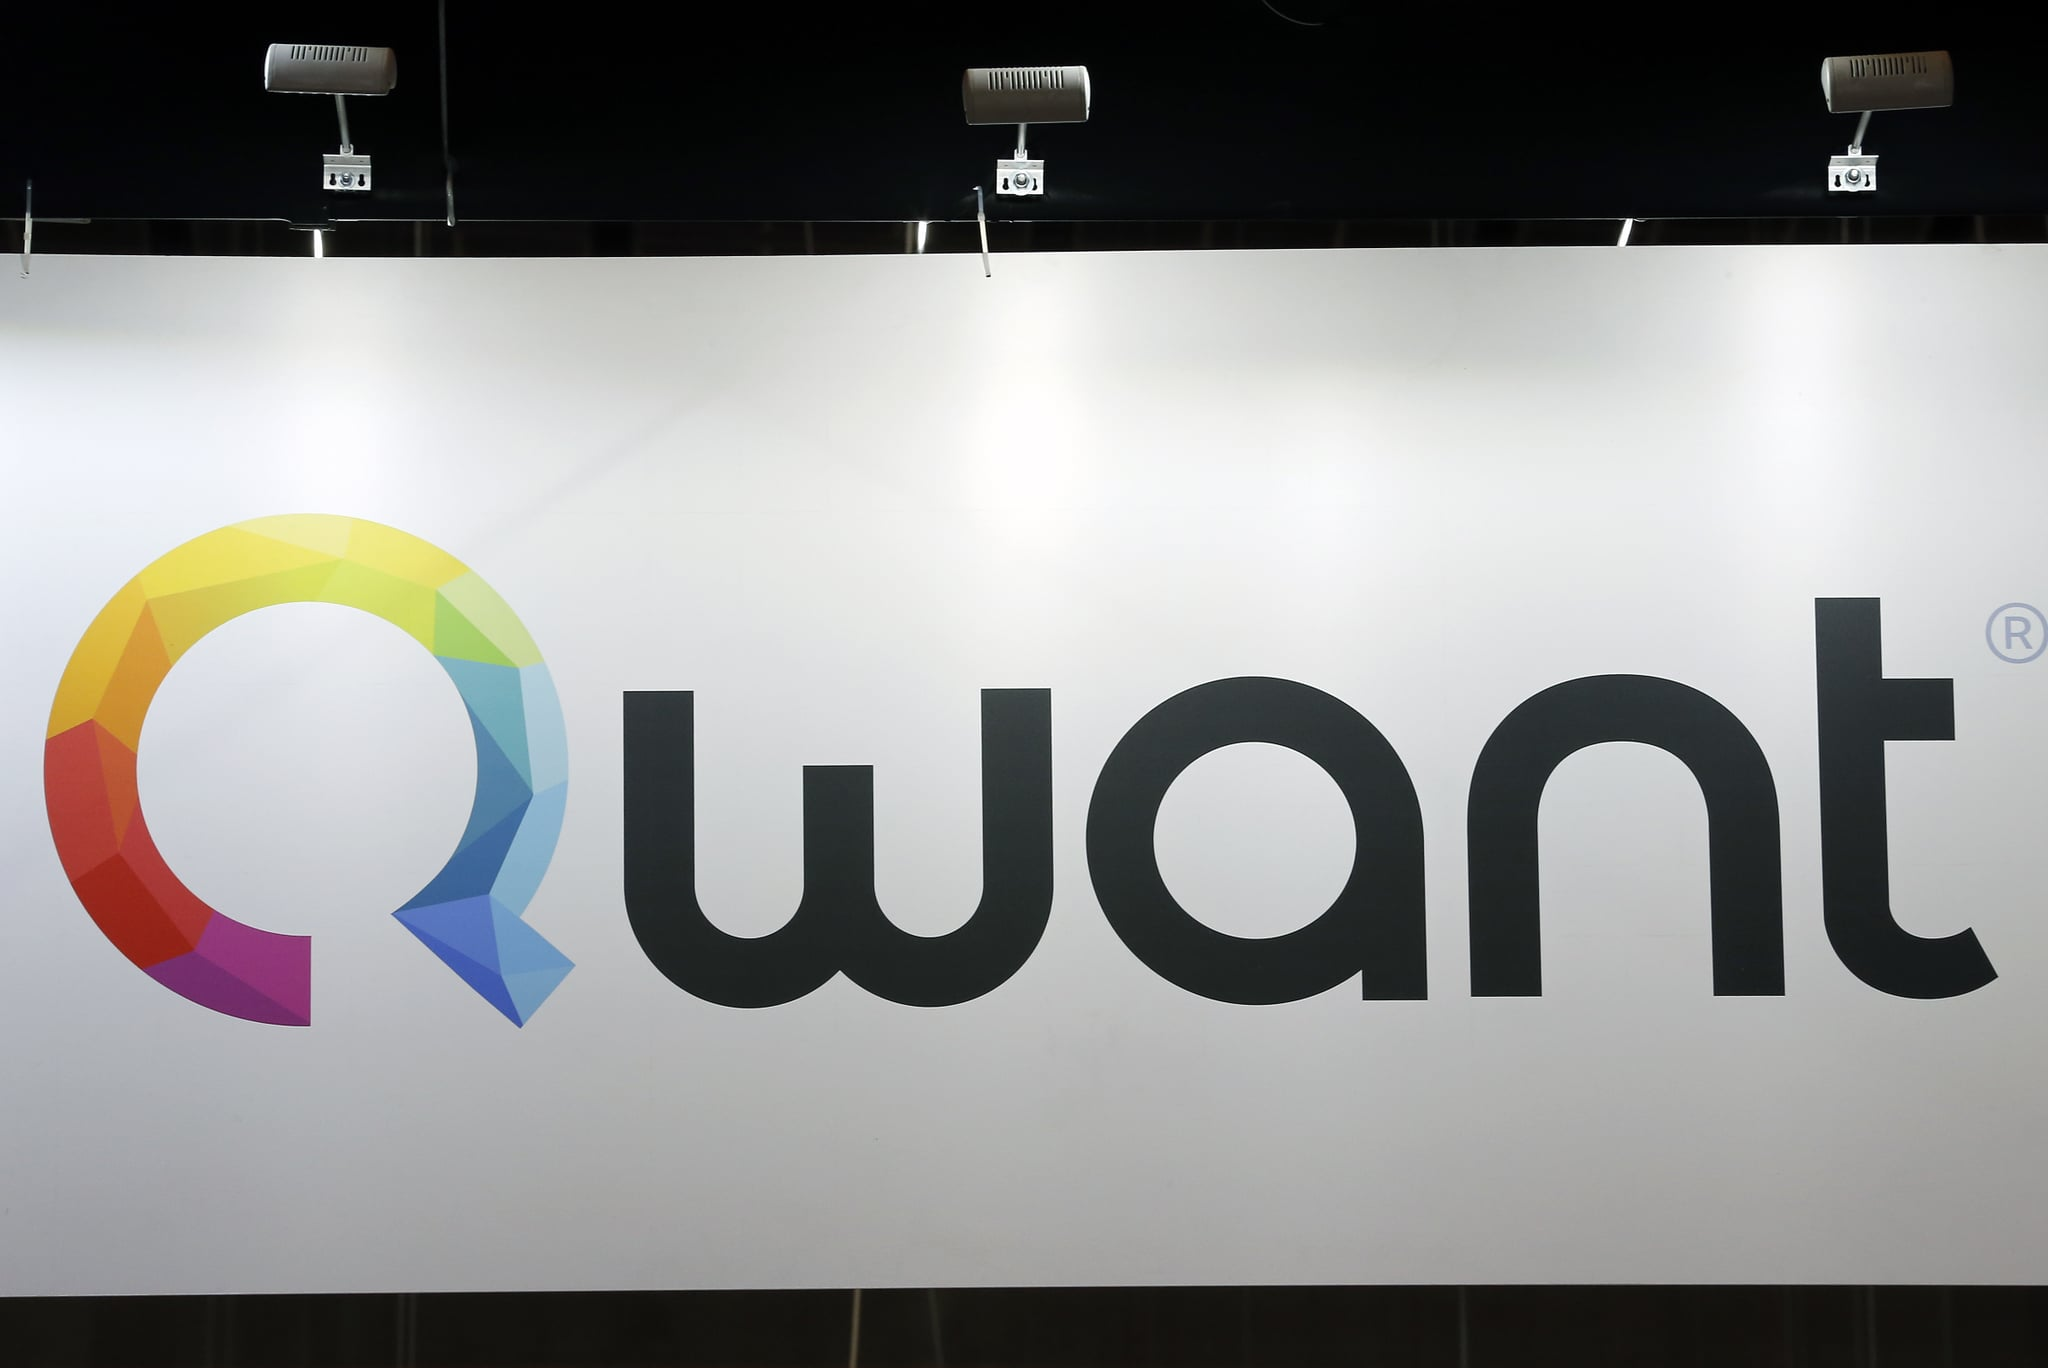 PARIS, FRANCE - JUNE 16:  A Qwant logo is displayed during the Viva Technology show on June 16, 2017 in Paris, France. Viva Technology, the new international event brings together 5,000 startups with top investors, companies to grow businesses and all players in the digital transformation who shape the future of the internet.  (Photo by Chesnot/Getty Images)